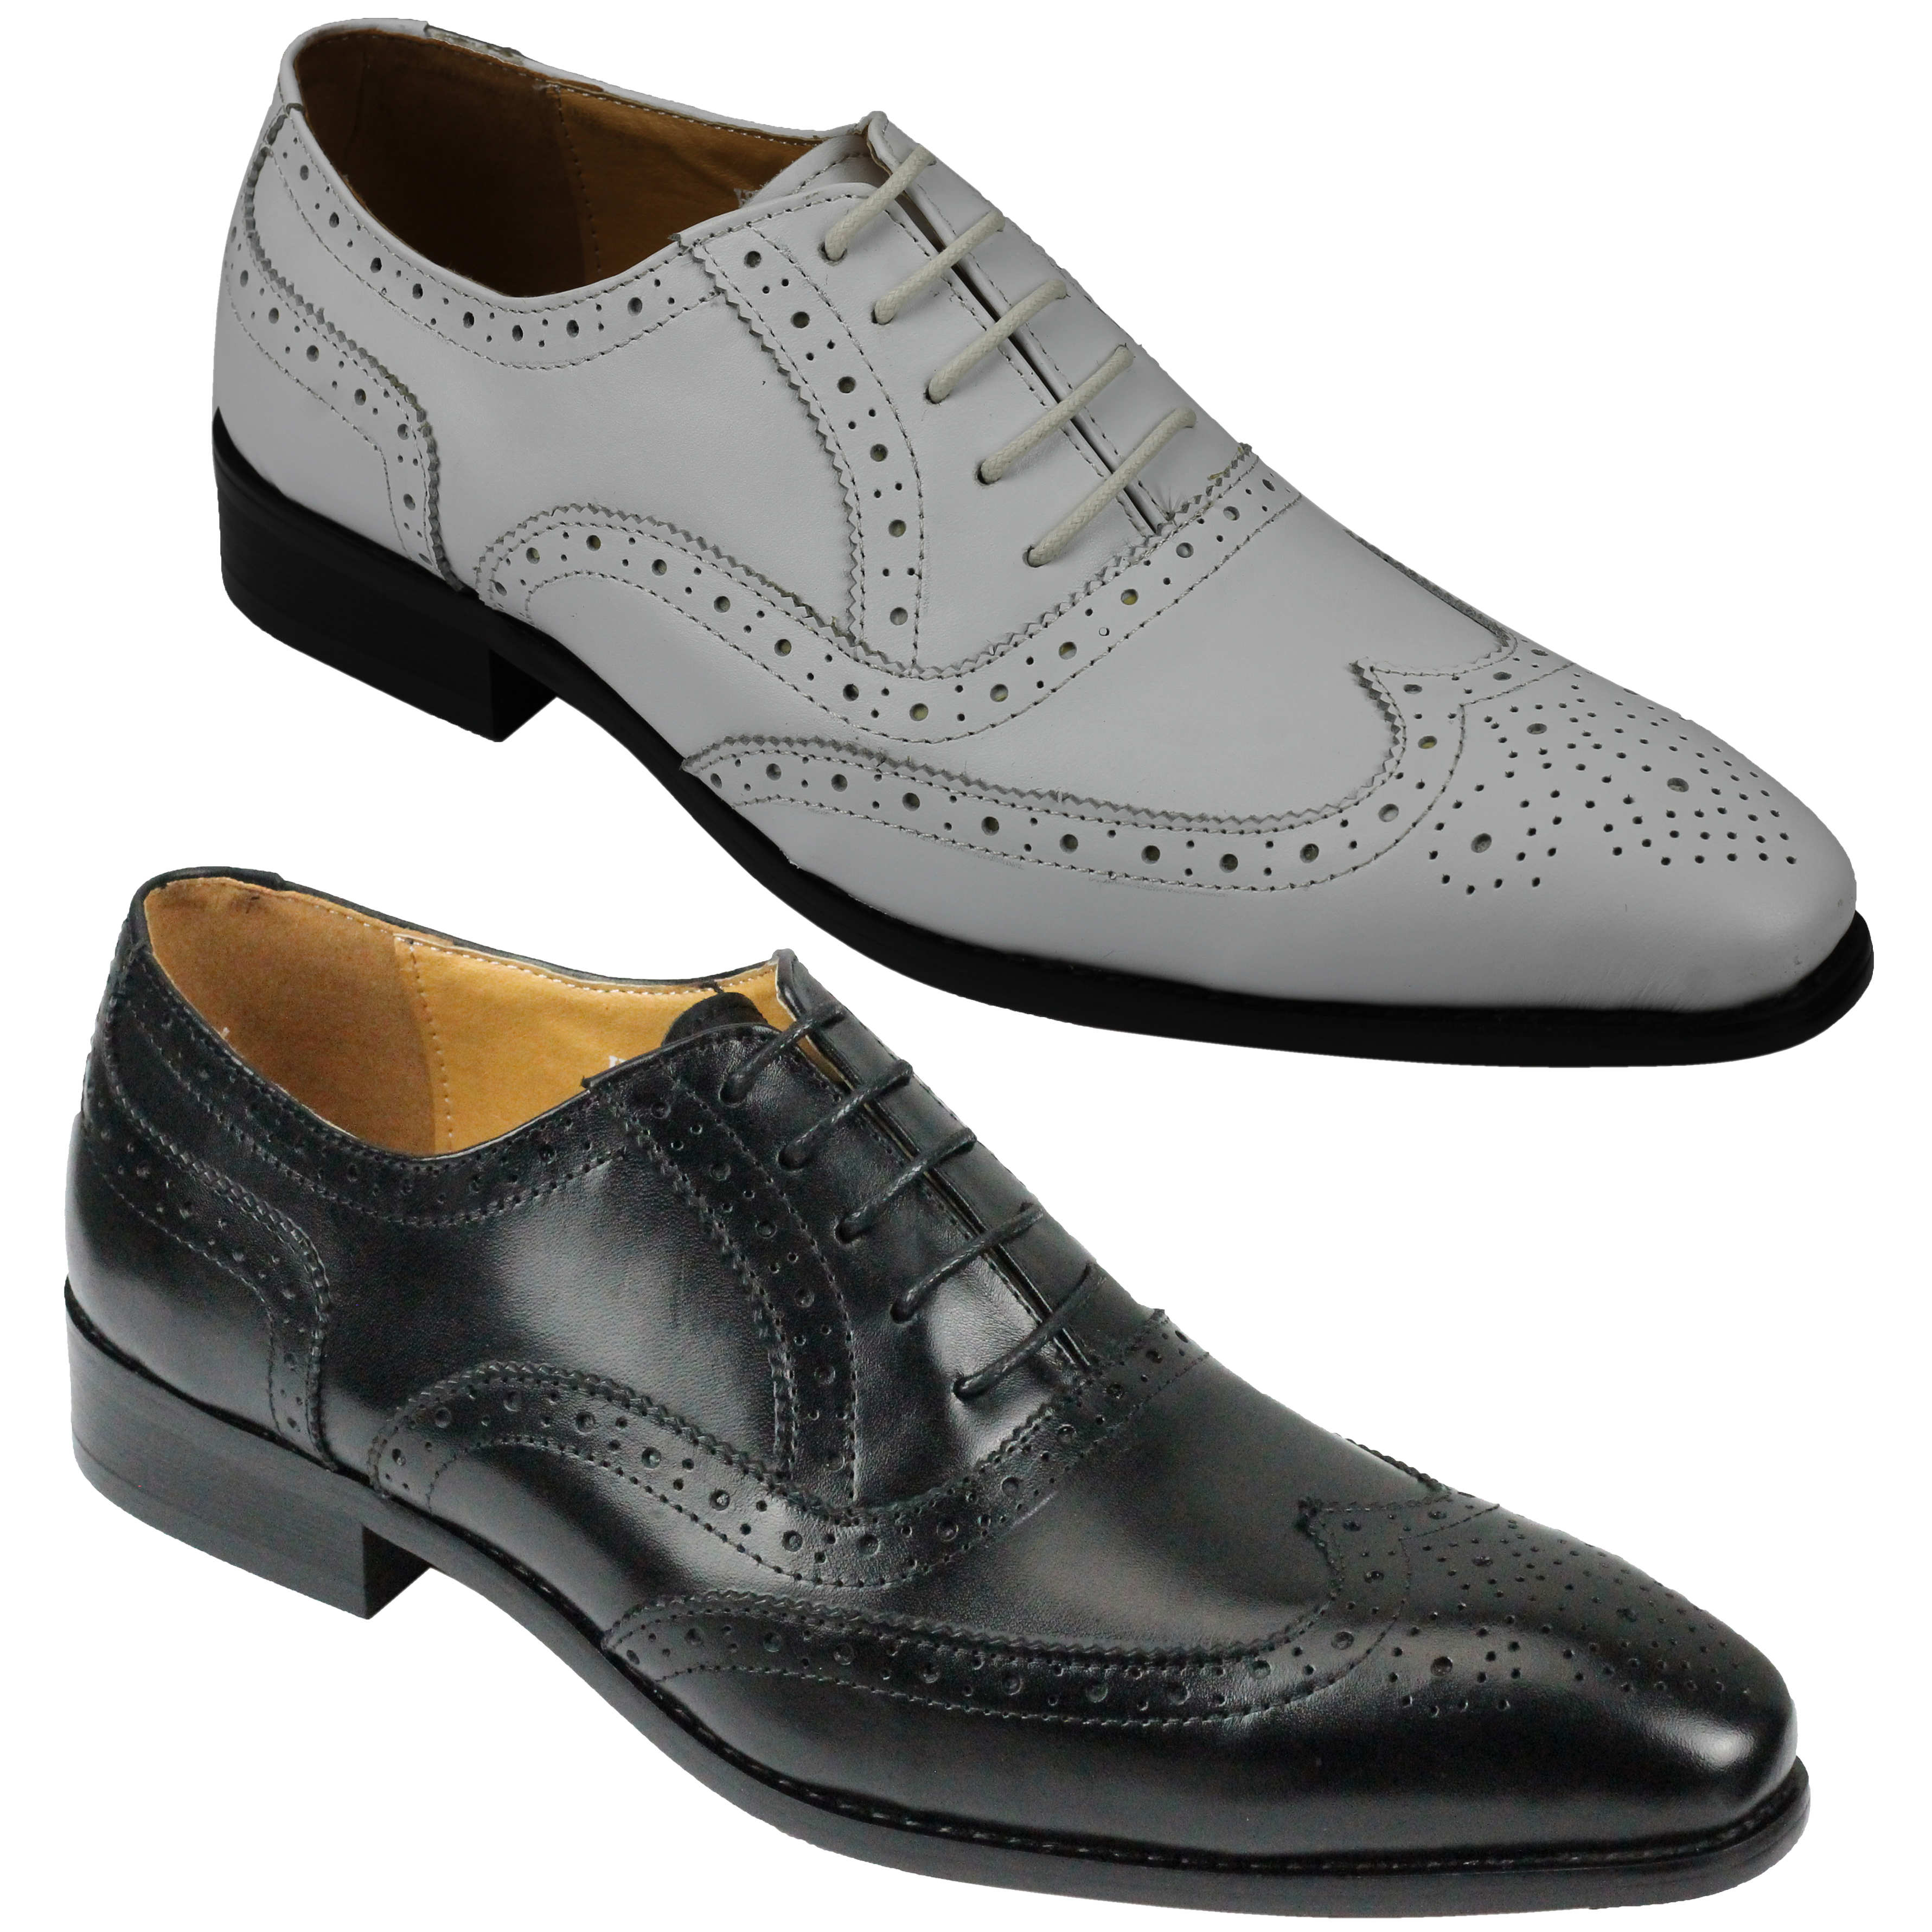 New in box men/'s dress shoes formal lace oxfords style 100/% real leather black